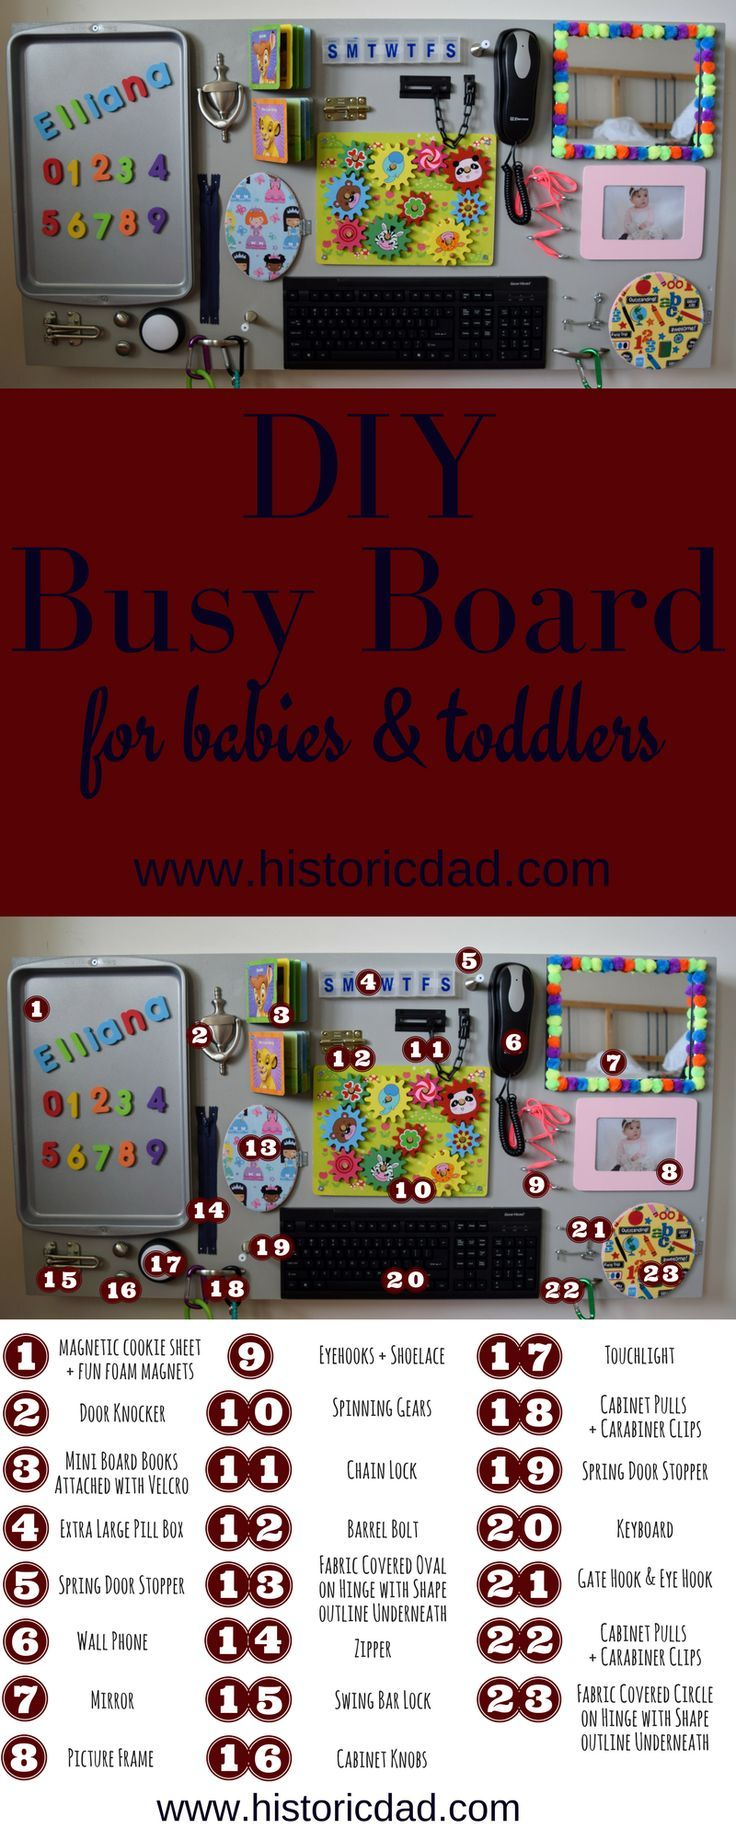 DIY BUSY BOARD - PERFECT FOR BABIES AND TODDLERS!! About 10 months ago, my wife and I were blessed with our precious little girl, Elliana! Over the course of these 10 months, we have had a blast playing with Elliana and watching her learn and play indepen